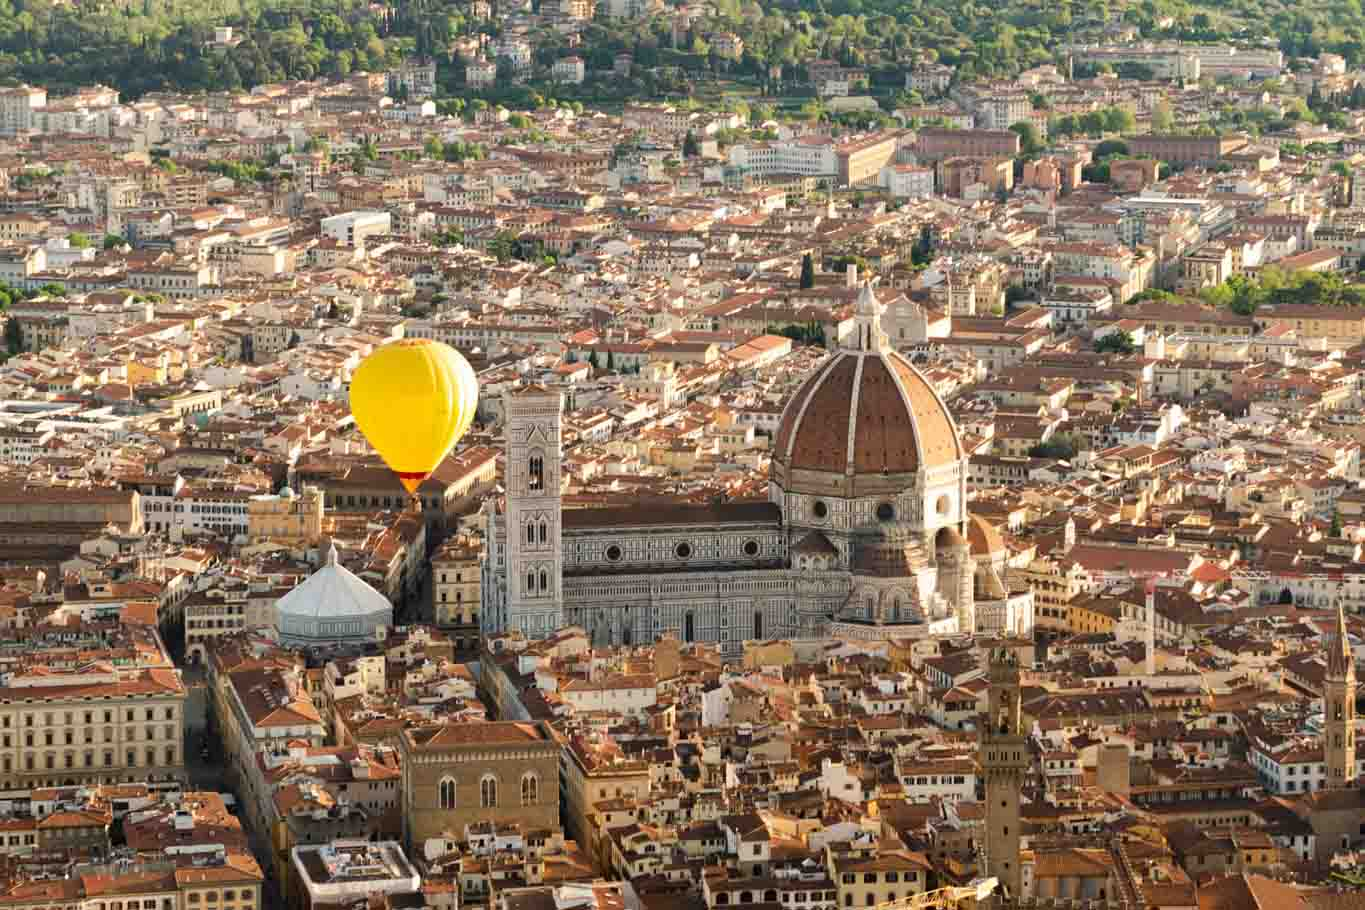 Ballooning in Florence over the city